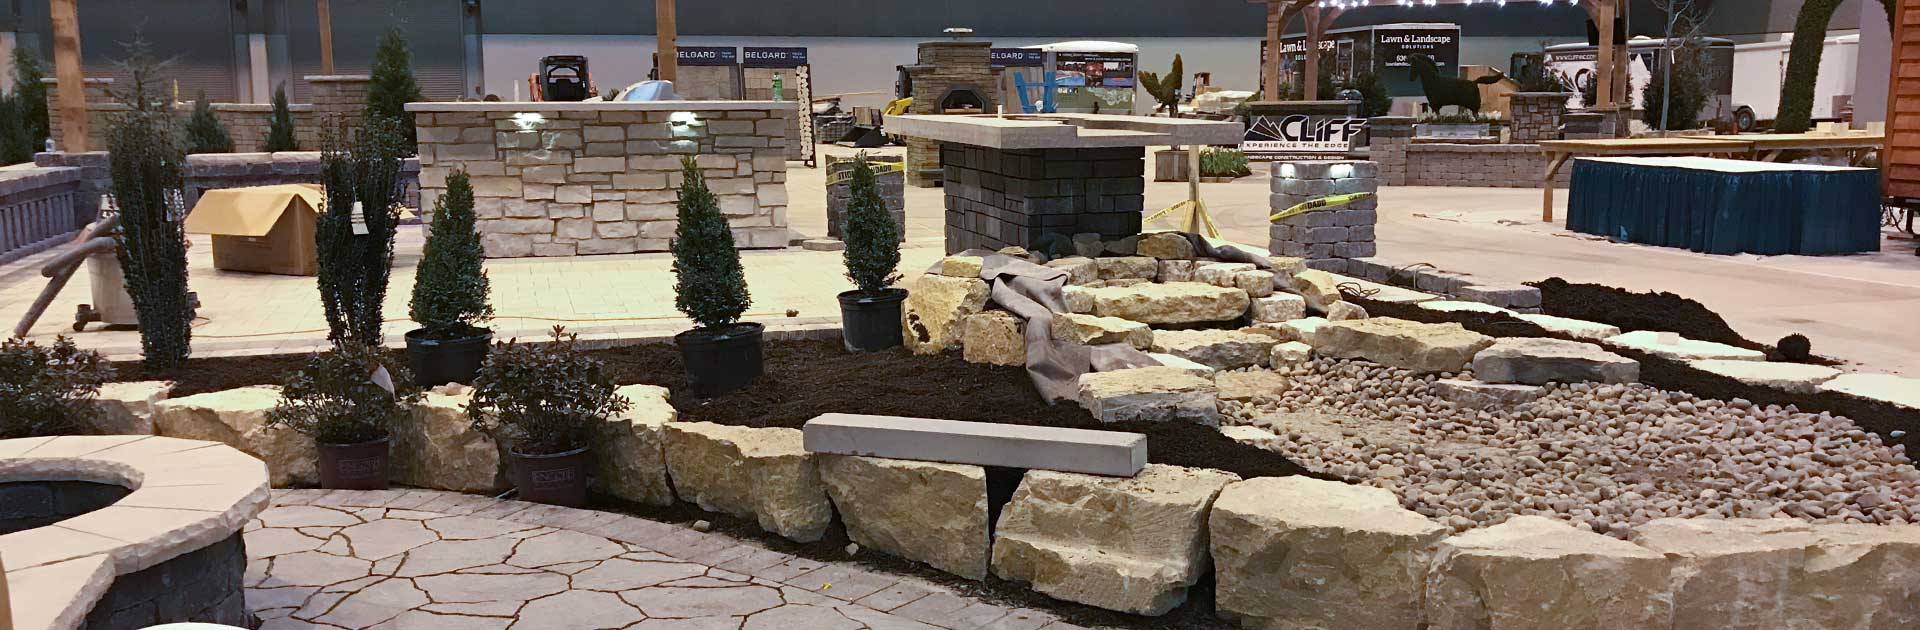 2020 St. Louis Home Show